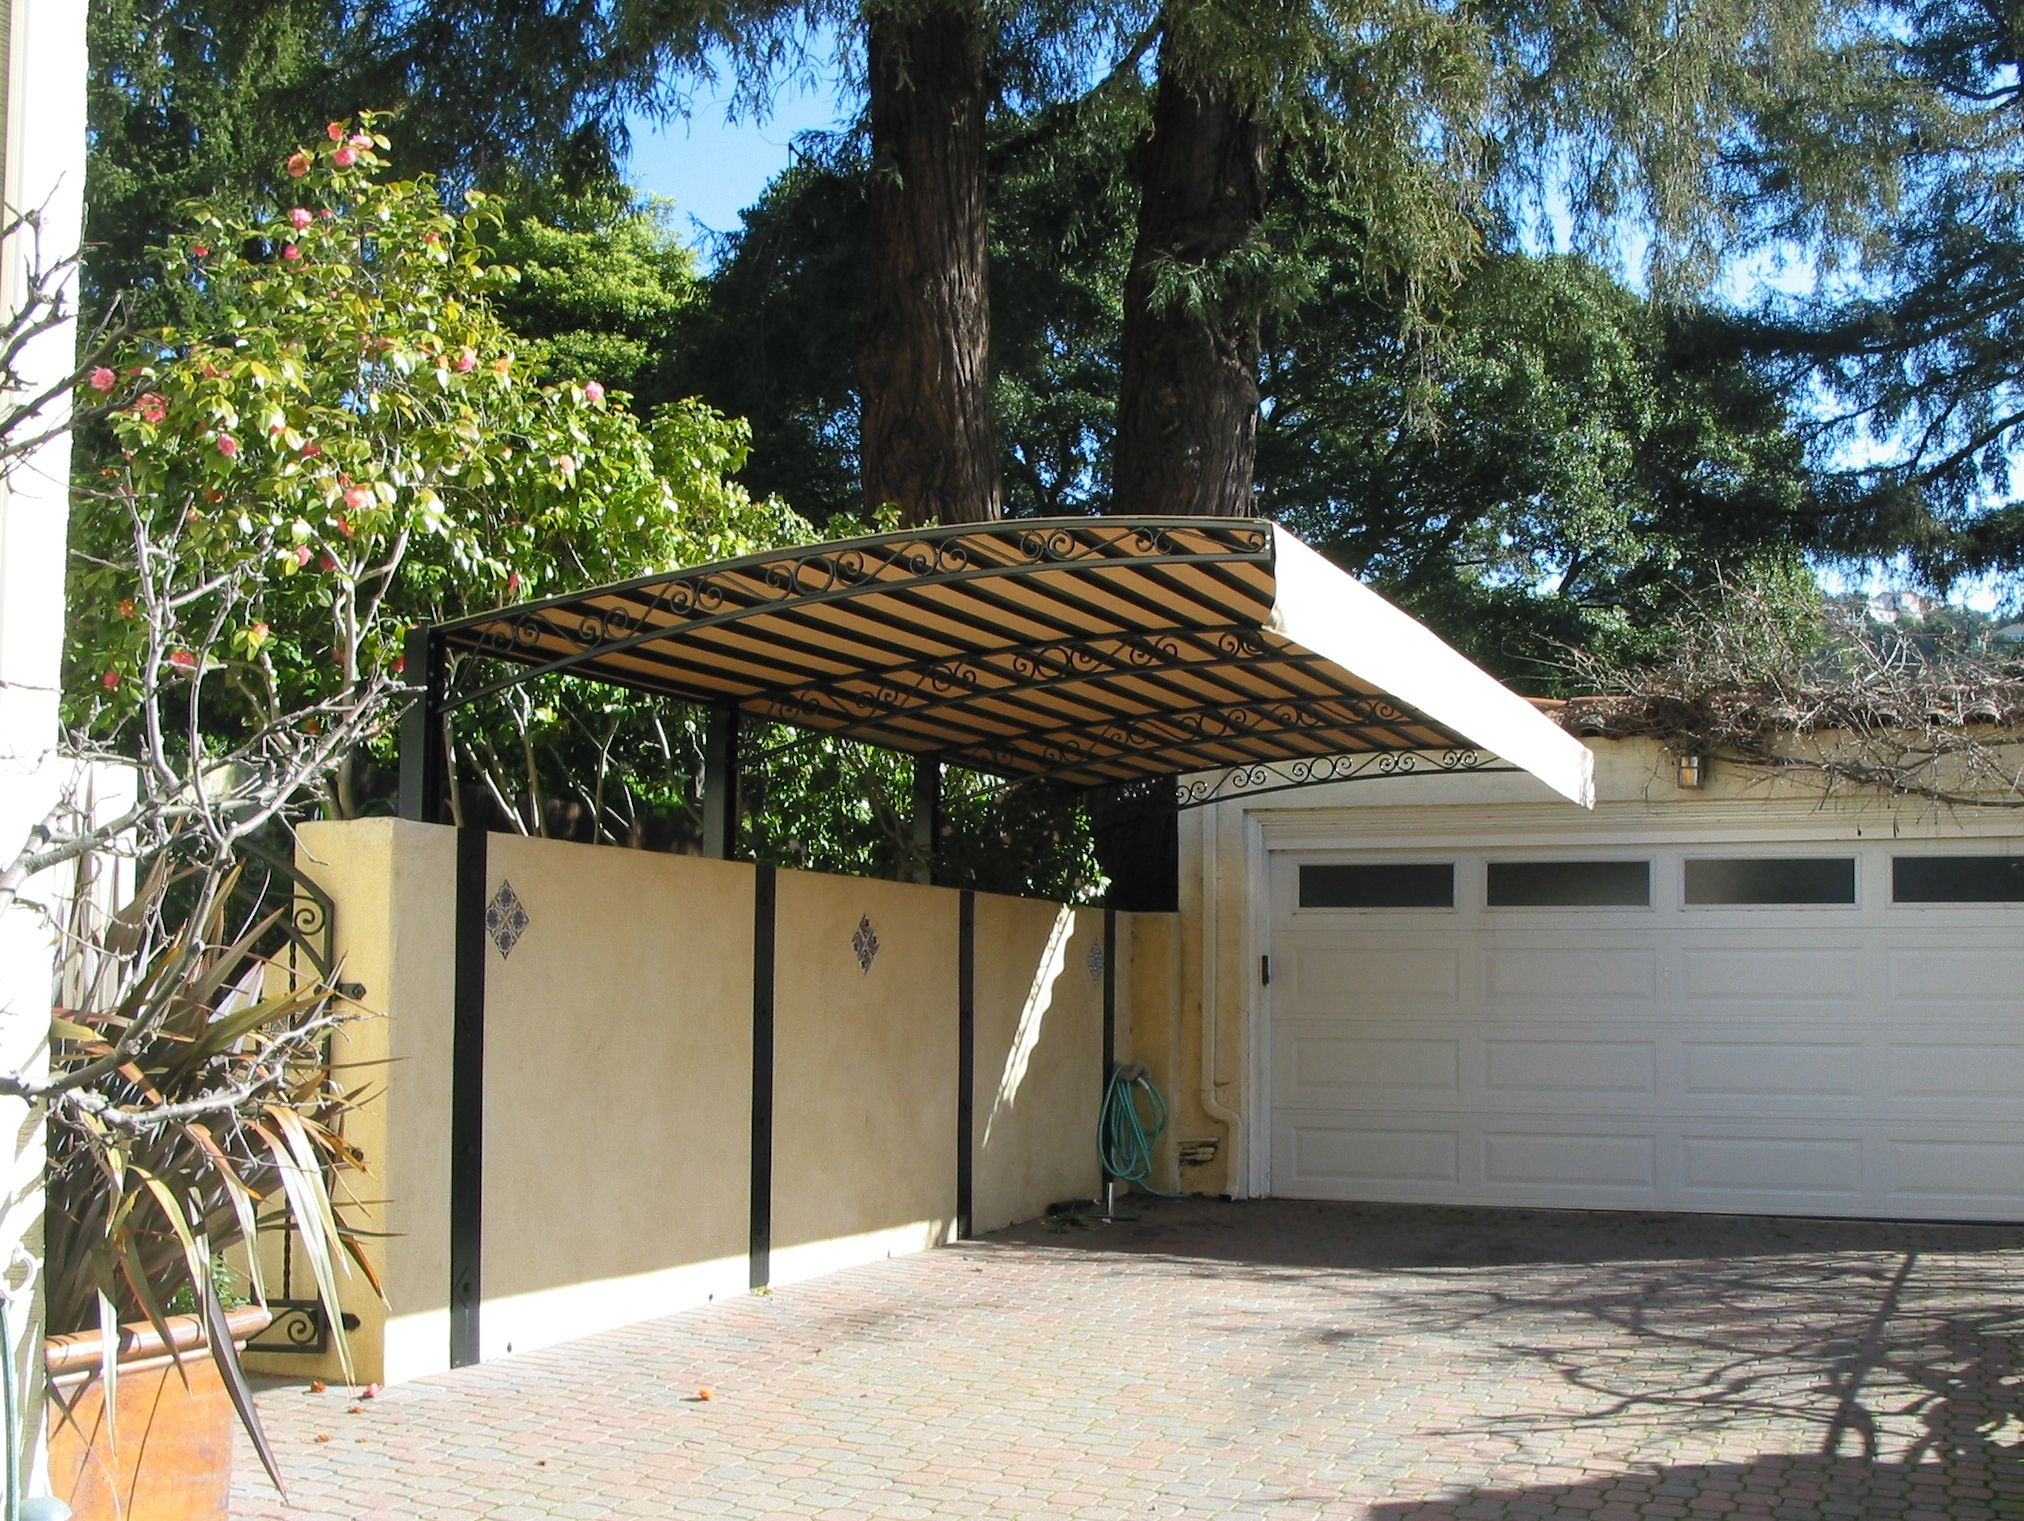 One sided overhang carport Canopy outdoor, Privacy fence